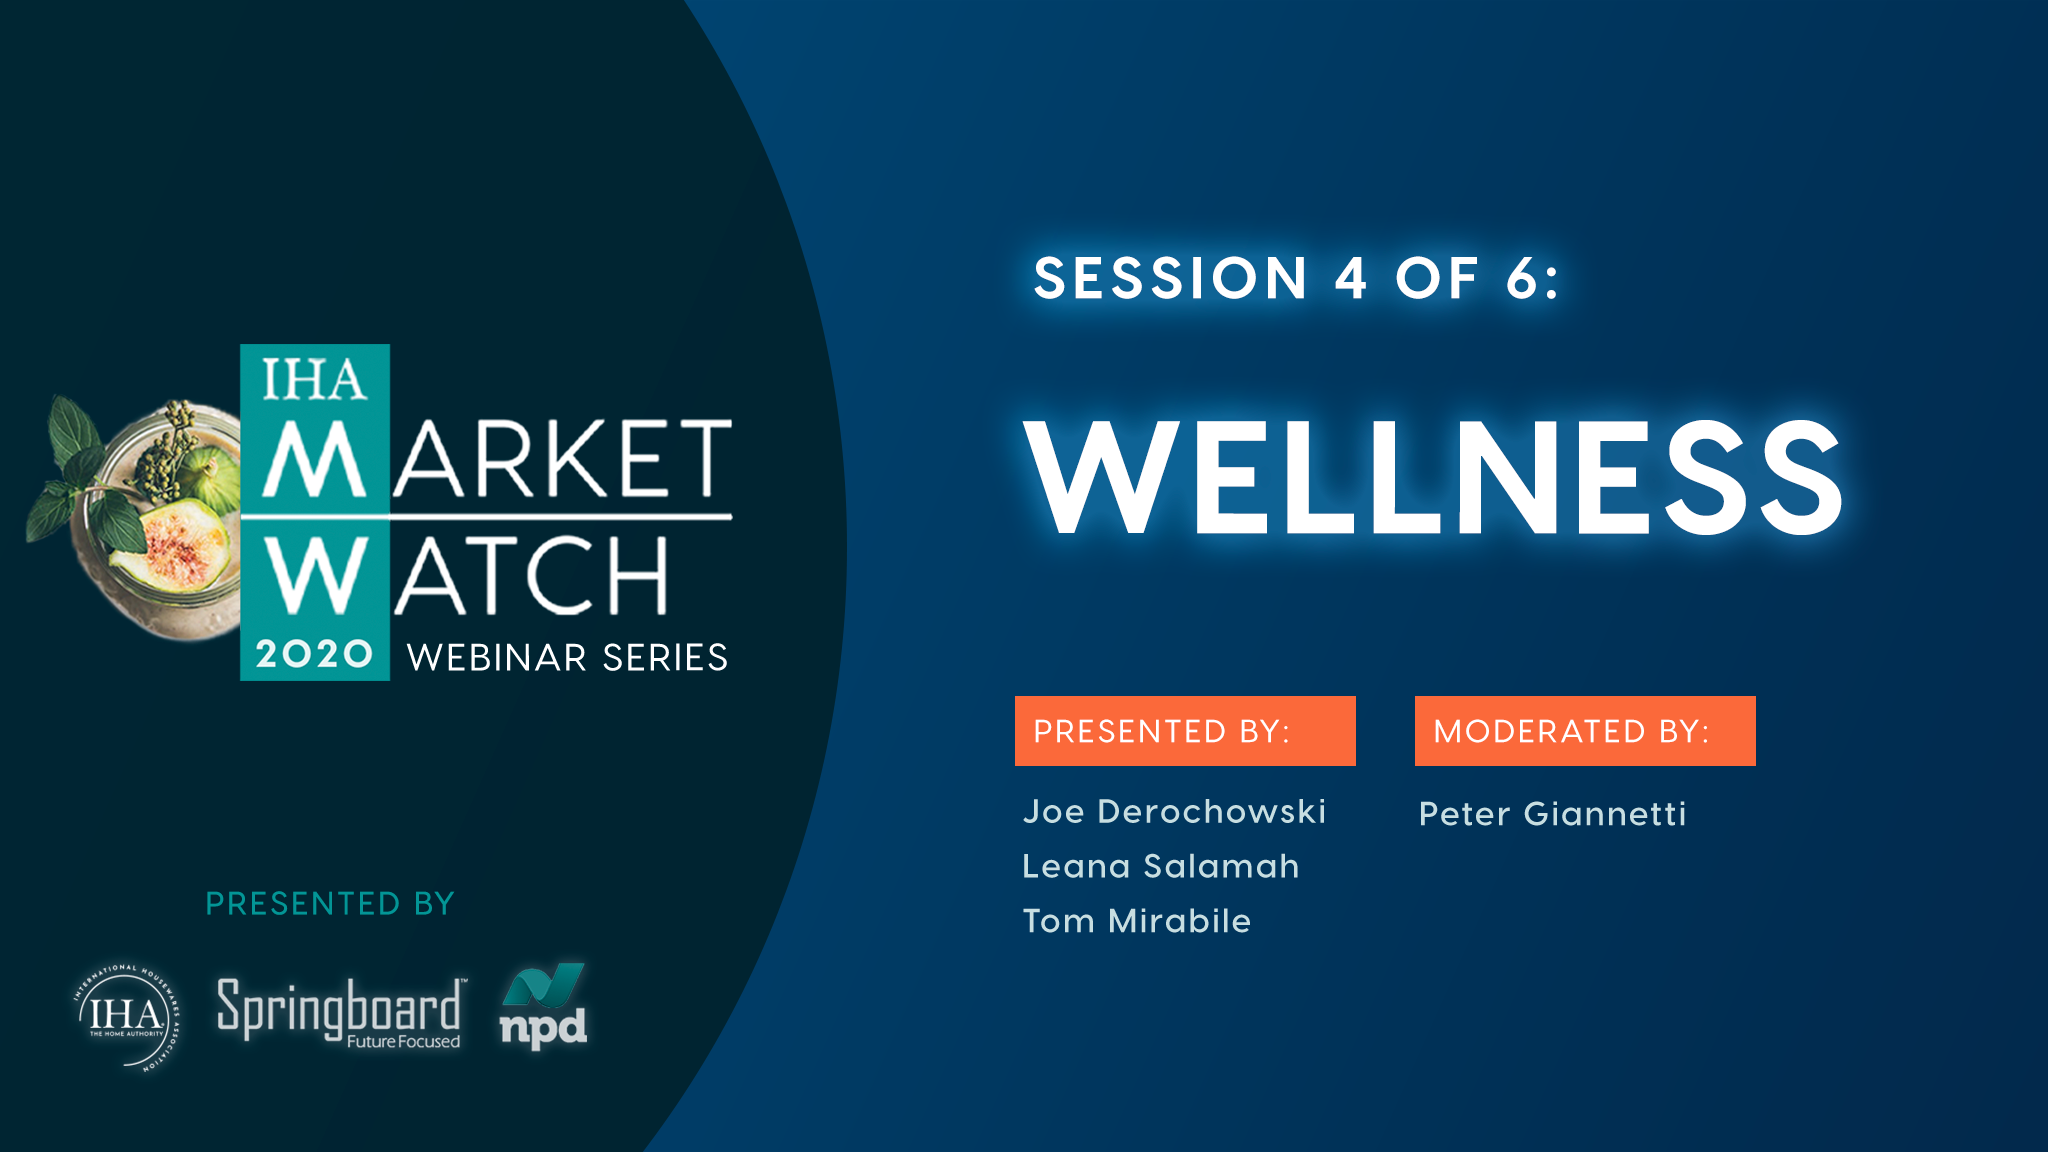 IHA Market Watch - Session 4 - Wellness